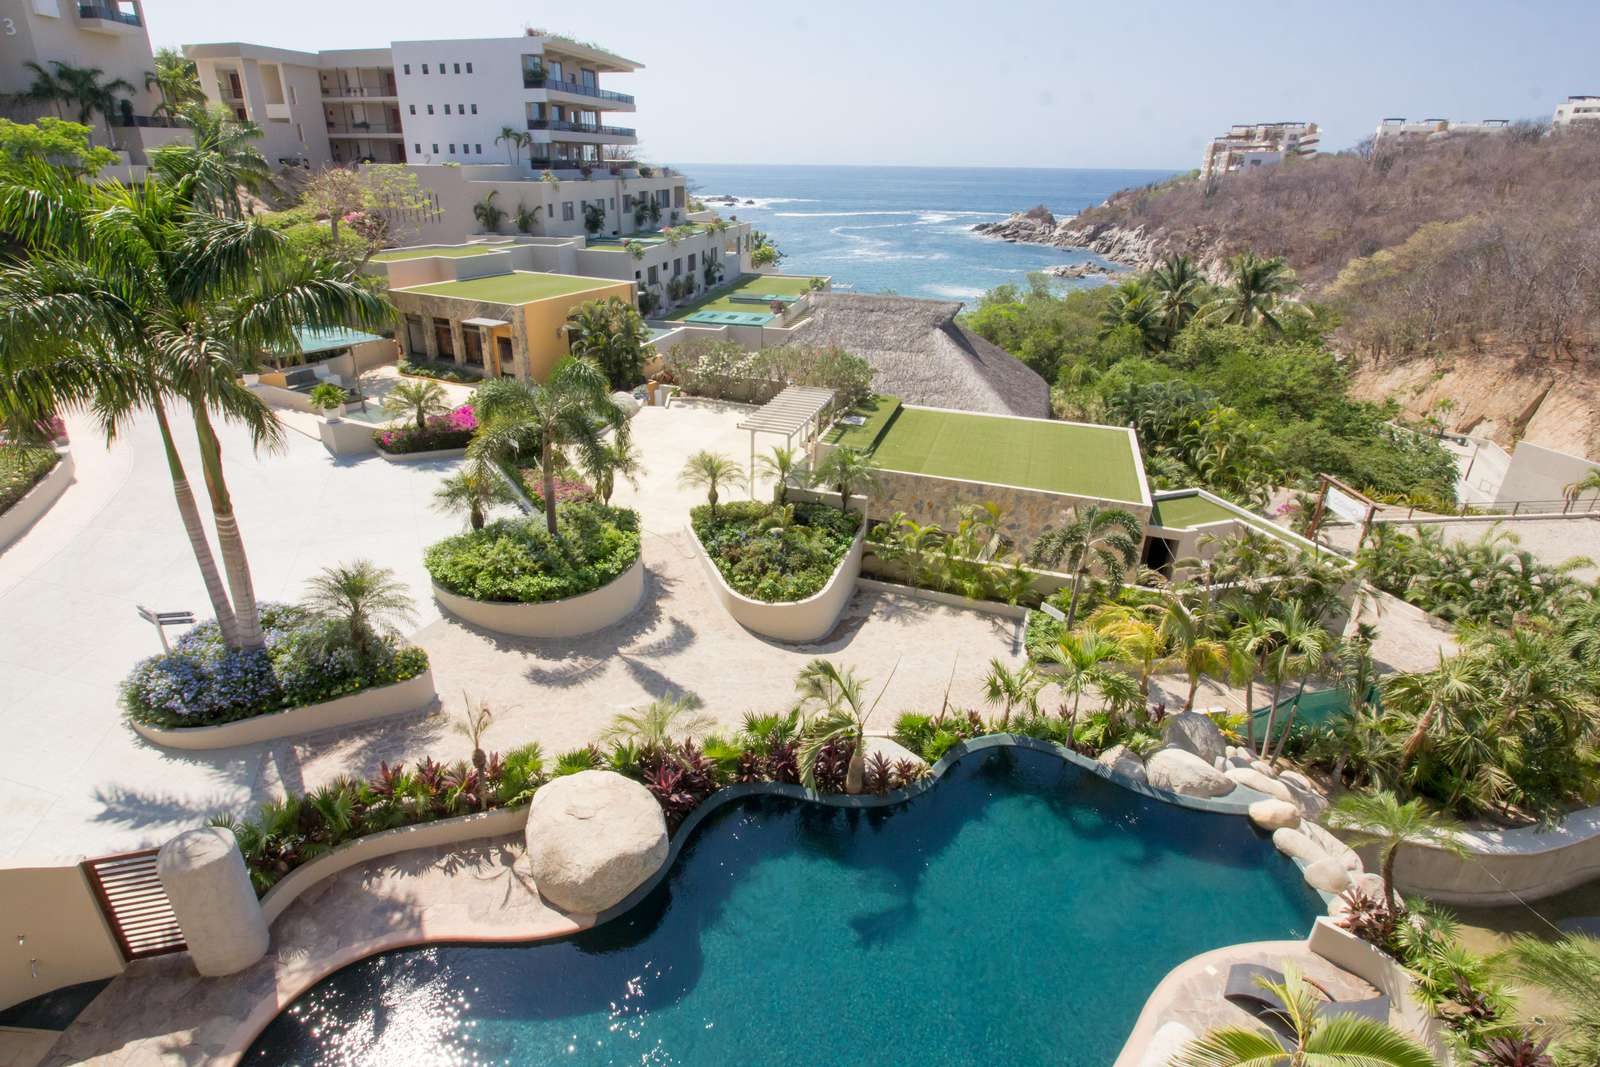 Spectacular ocean views from this property